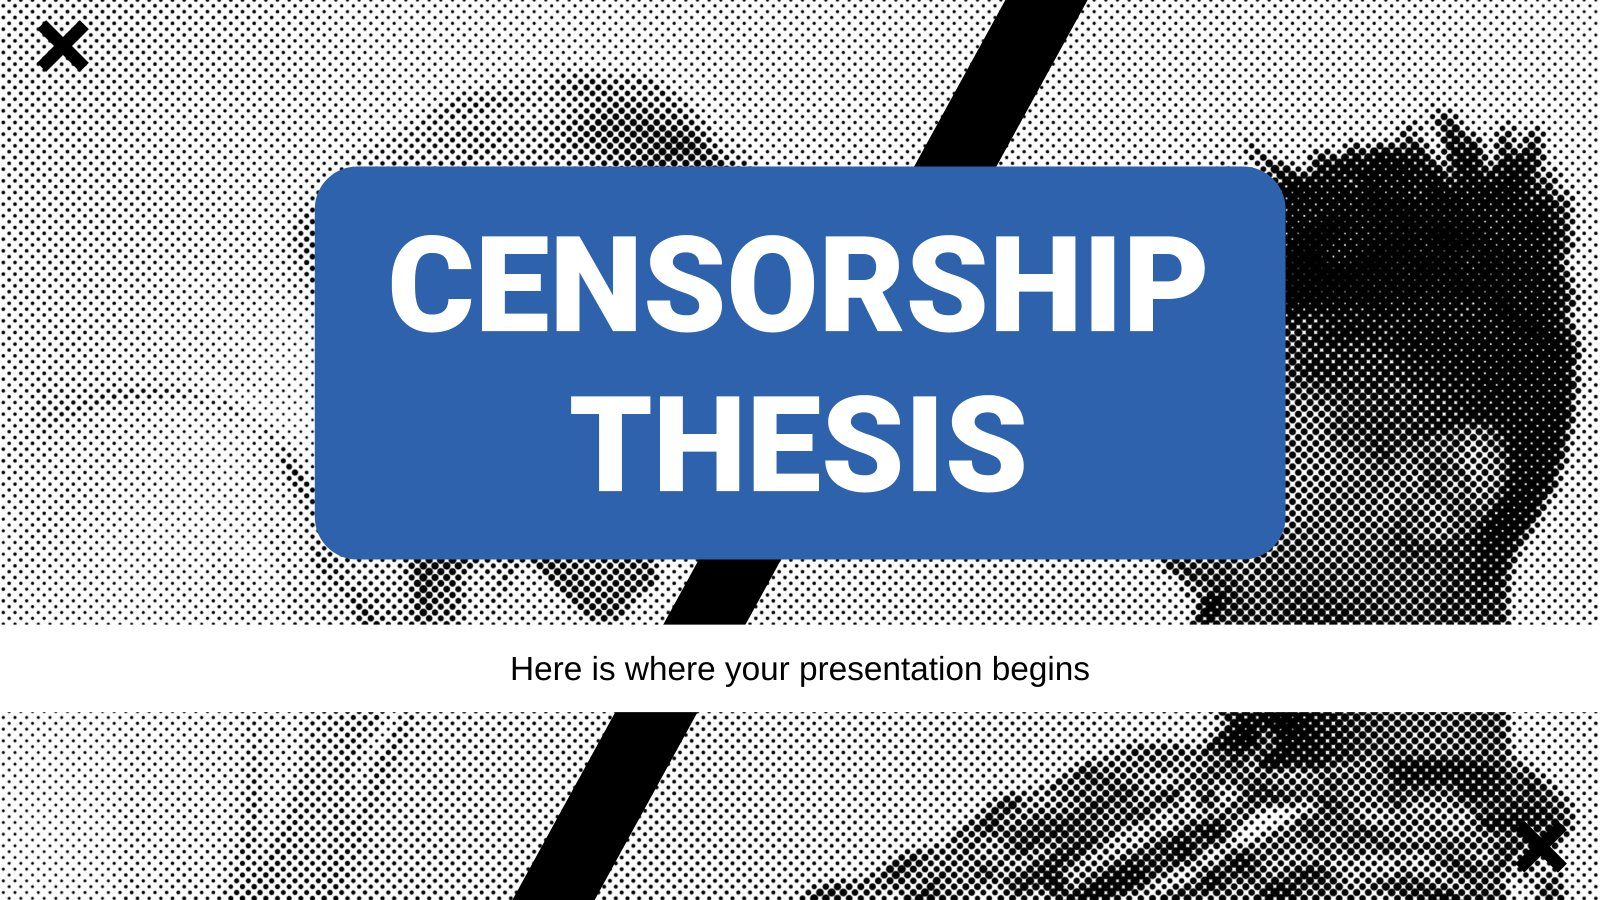 Censorship Thesis presentation template